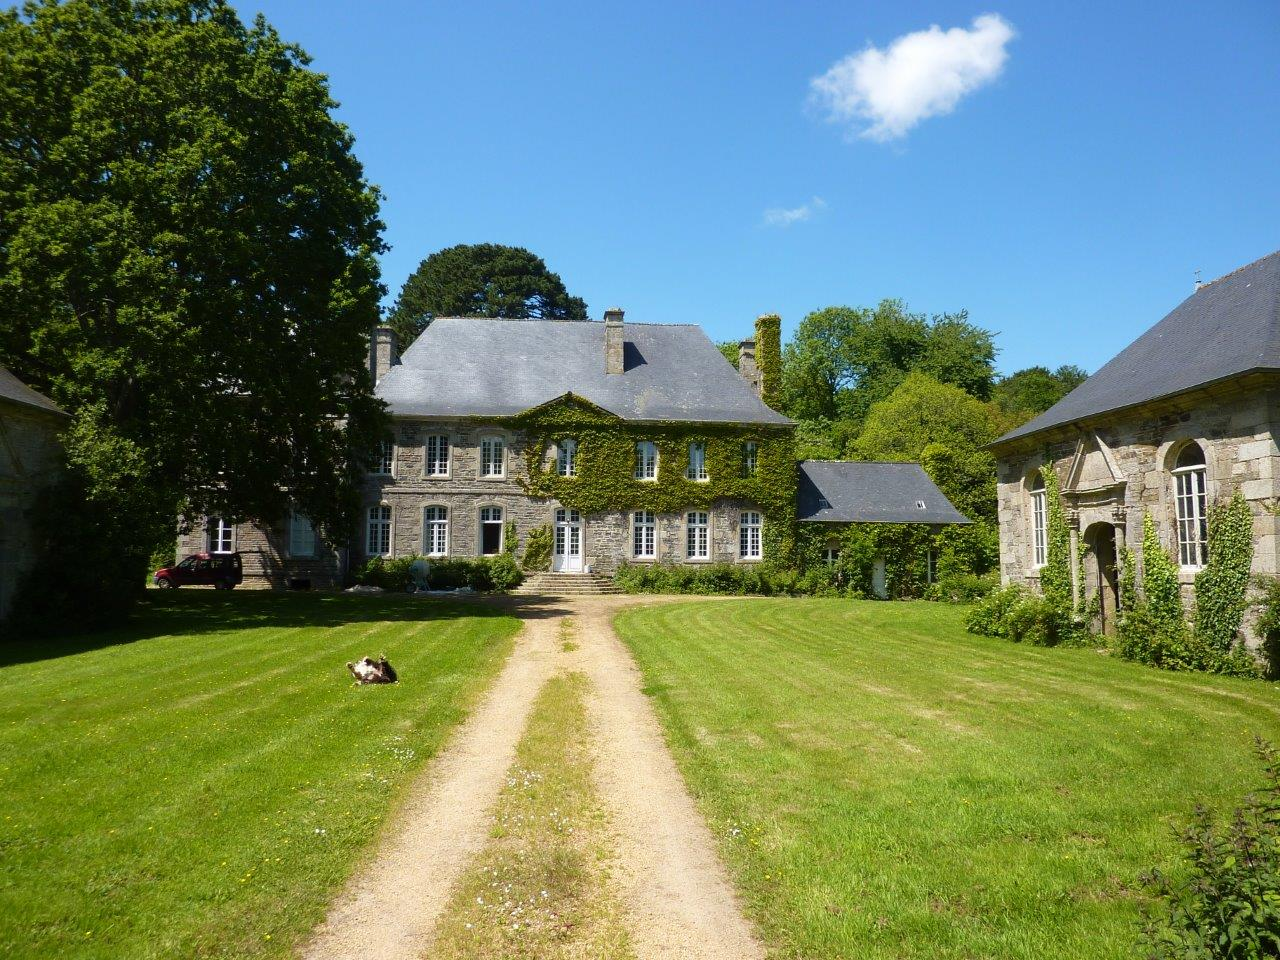 Single Family Home for Sale at Chateau VL Pl Other Brittany, Brittany 22300 France